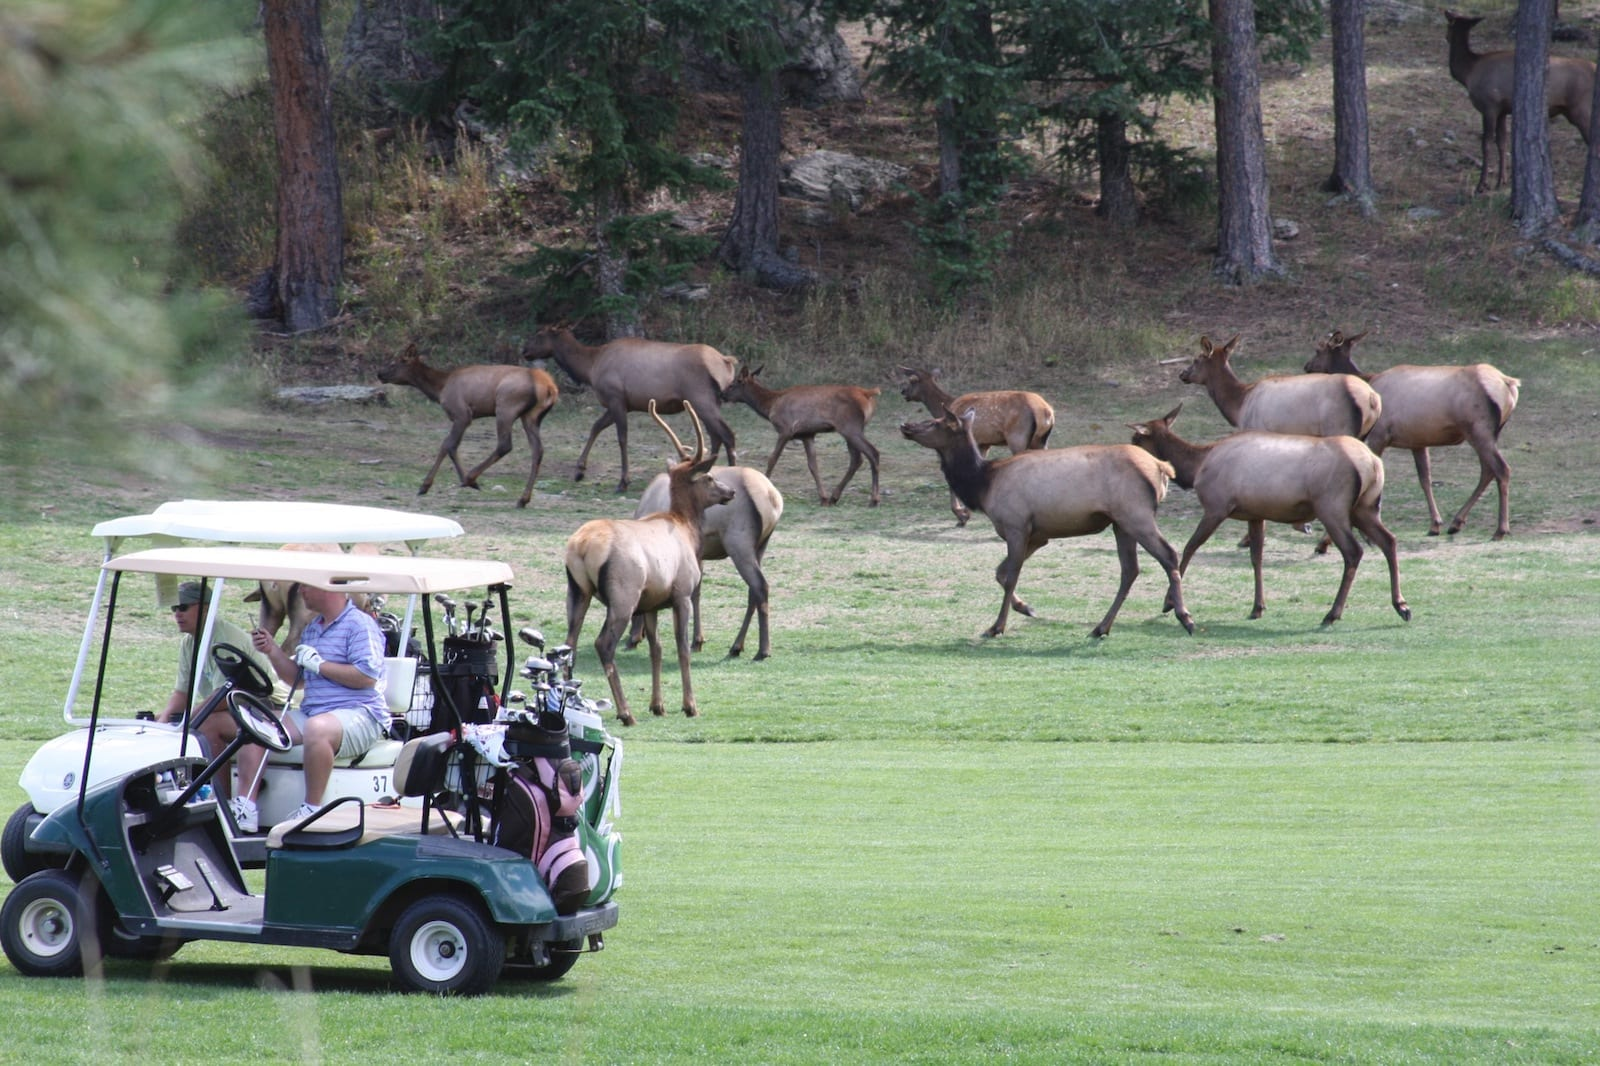 Elk on the golf course at Evergreen CO